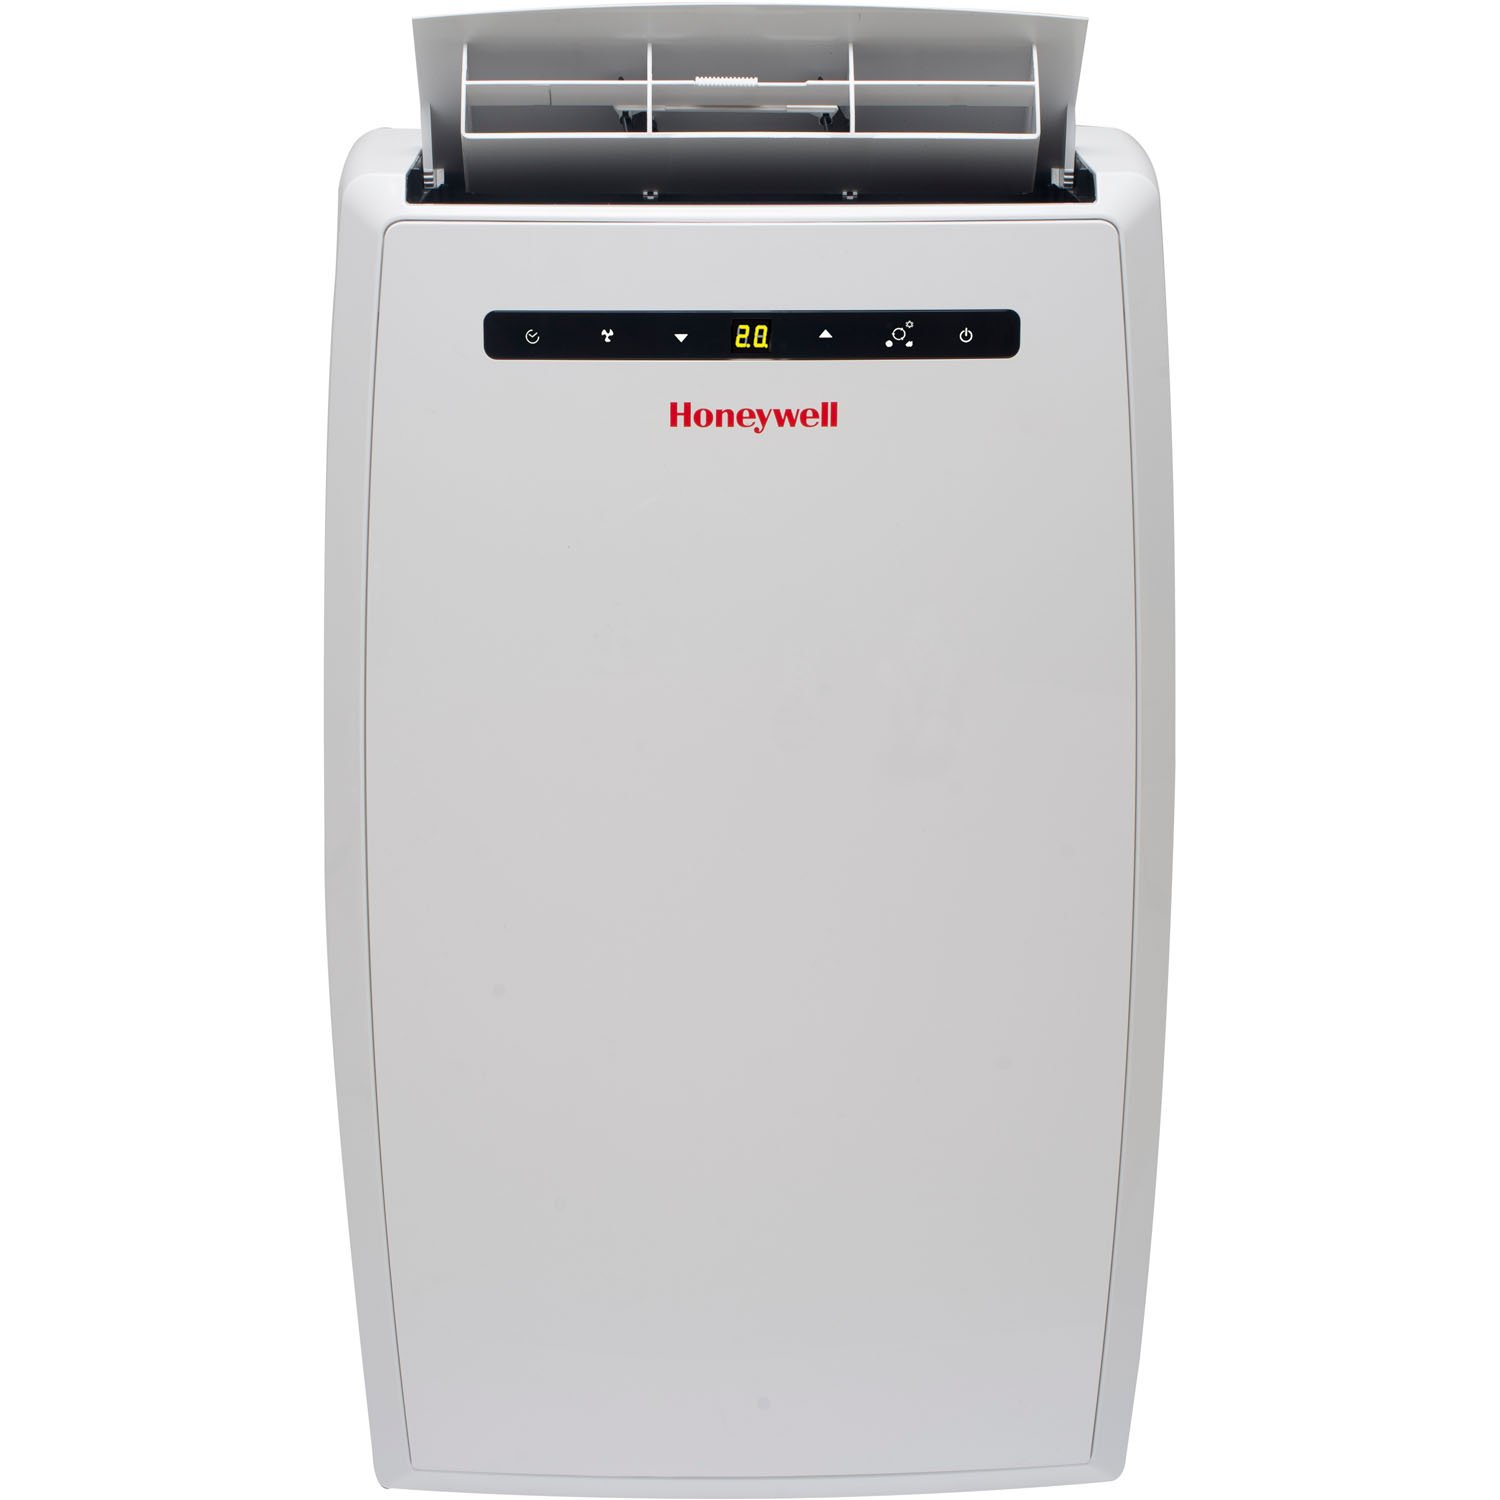 Honeywell MN10CESBB Portable Air Conditioner with Dehumidifier & Fan for Rooms Up To 450 Sq. Ft. with Remote Control (Black)